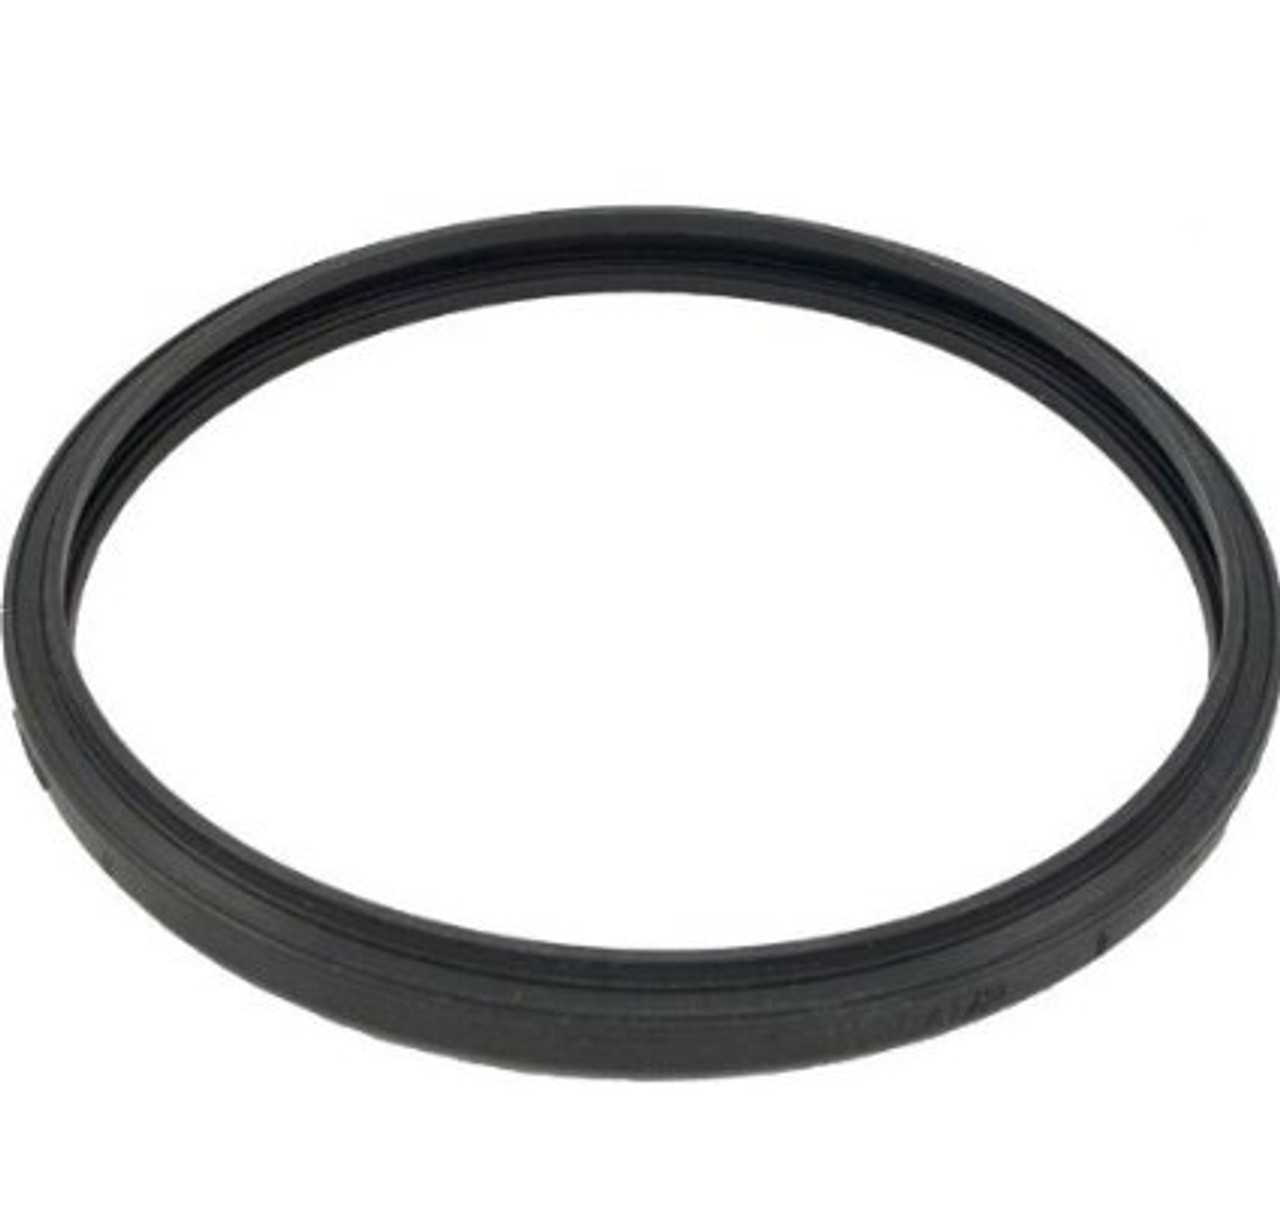 Pentair Aquatic Systems 05501-0005 Lens Gasket Replacement Sta-Rite Large Underwater Pool Light